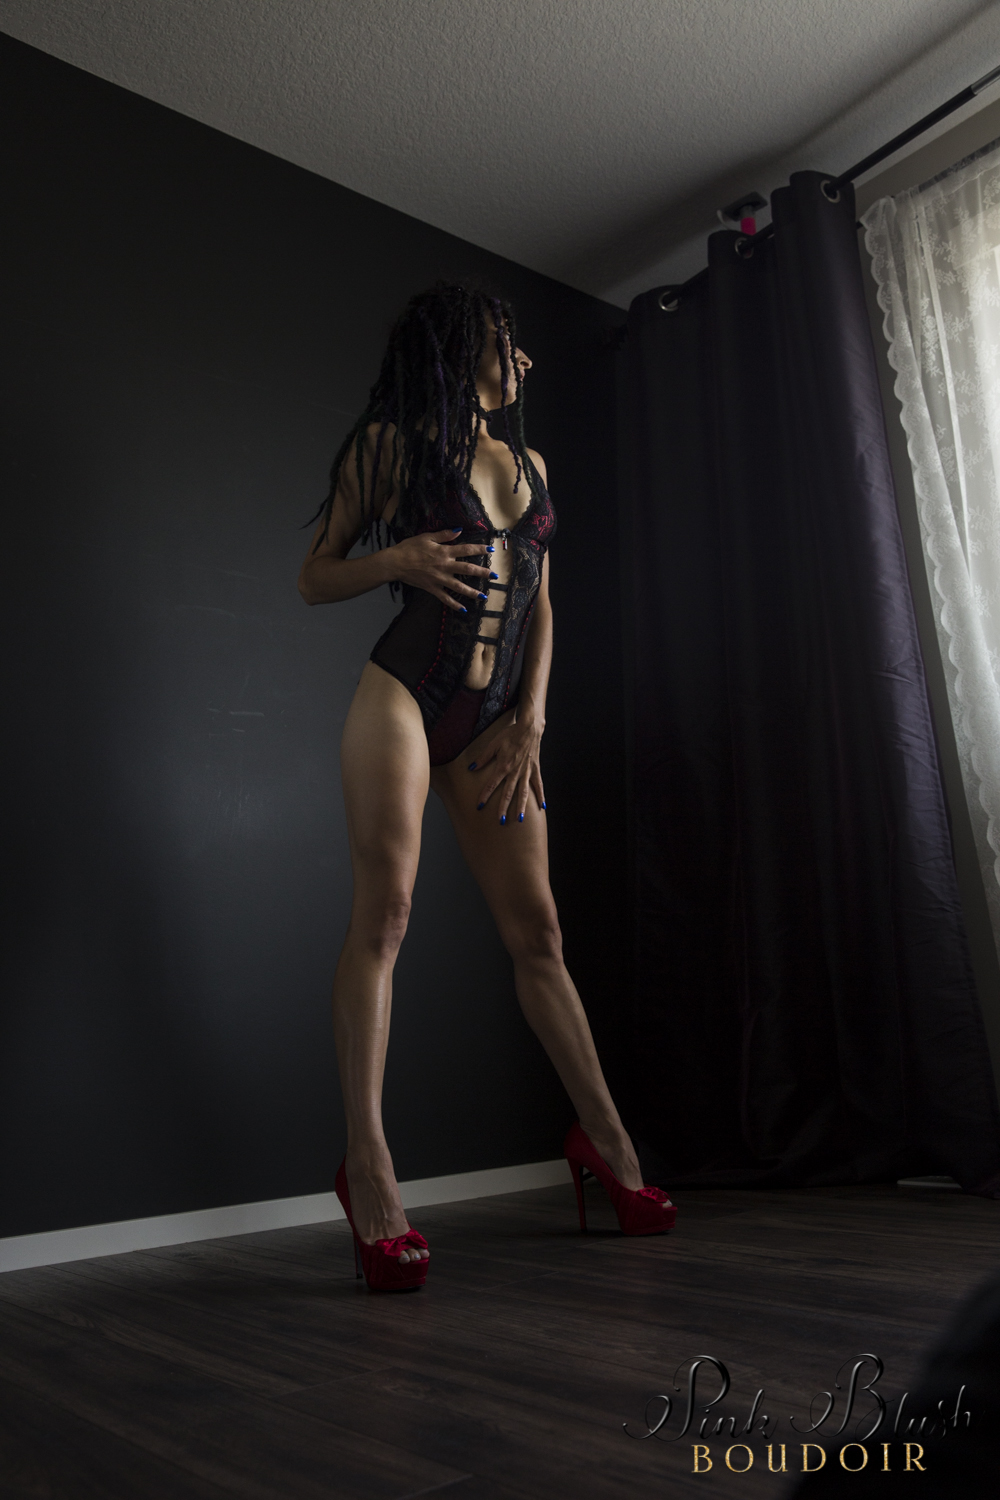 Boudoir Photography Edmonton, woman standing in a black and red lace body suit